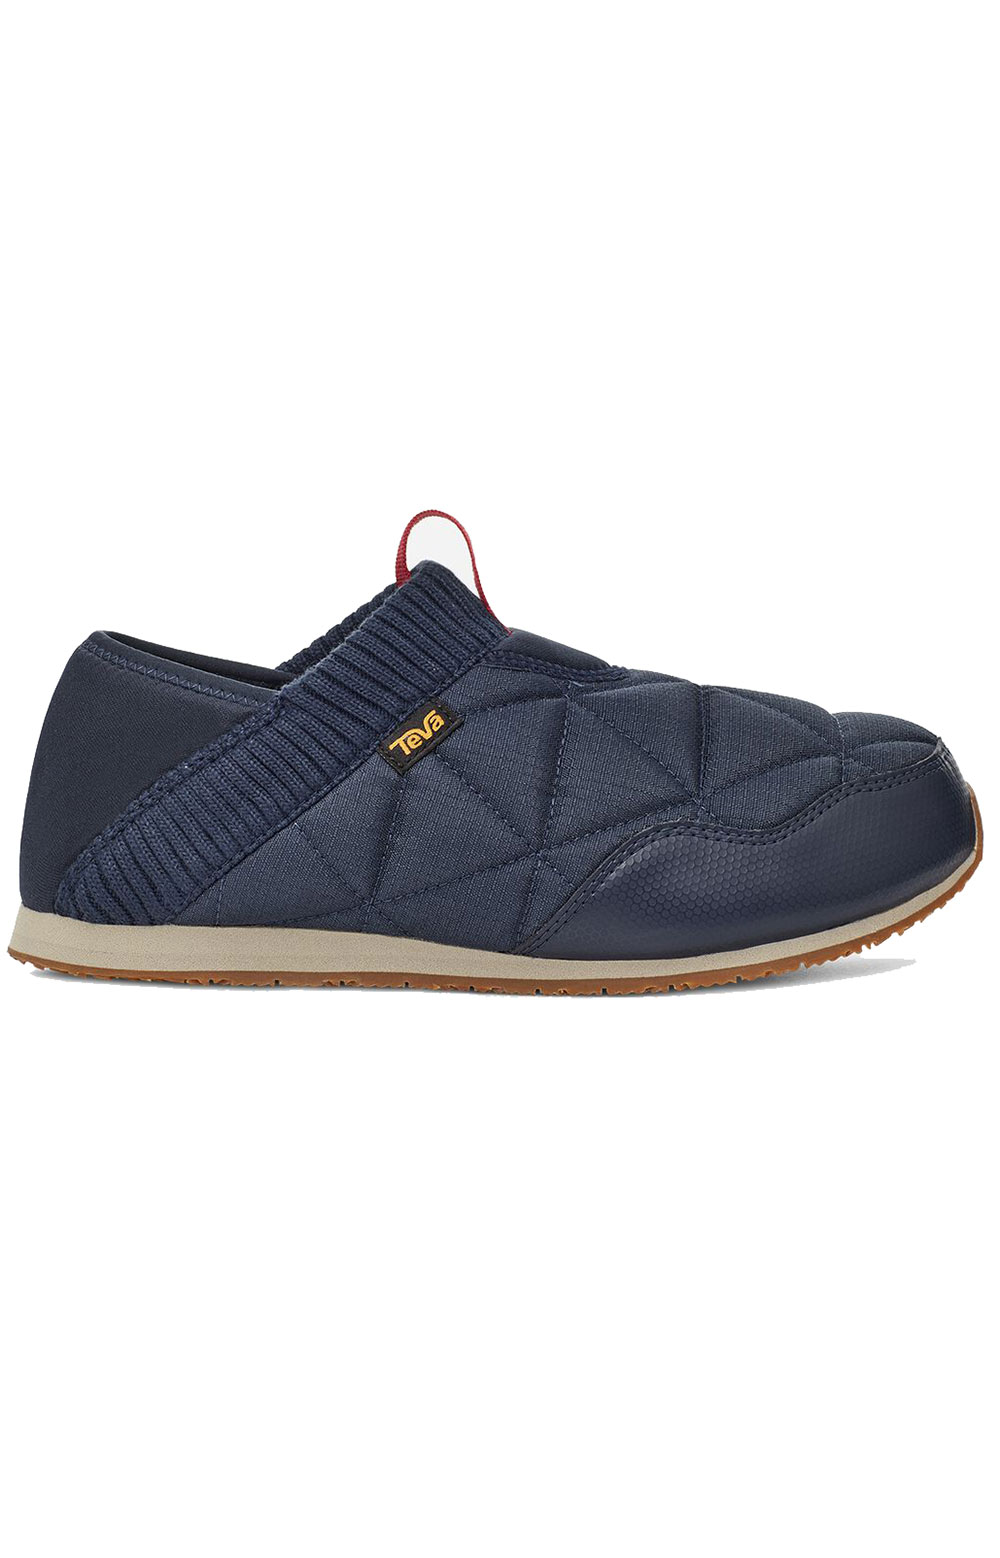 (1125472) ReEMBER Moccasins - Total Eclipse